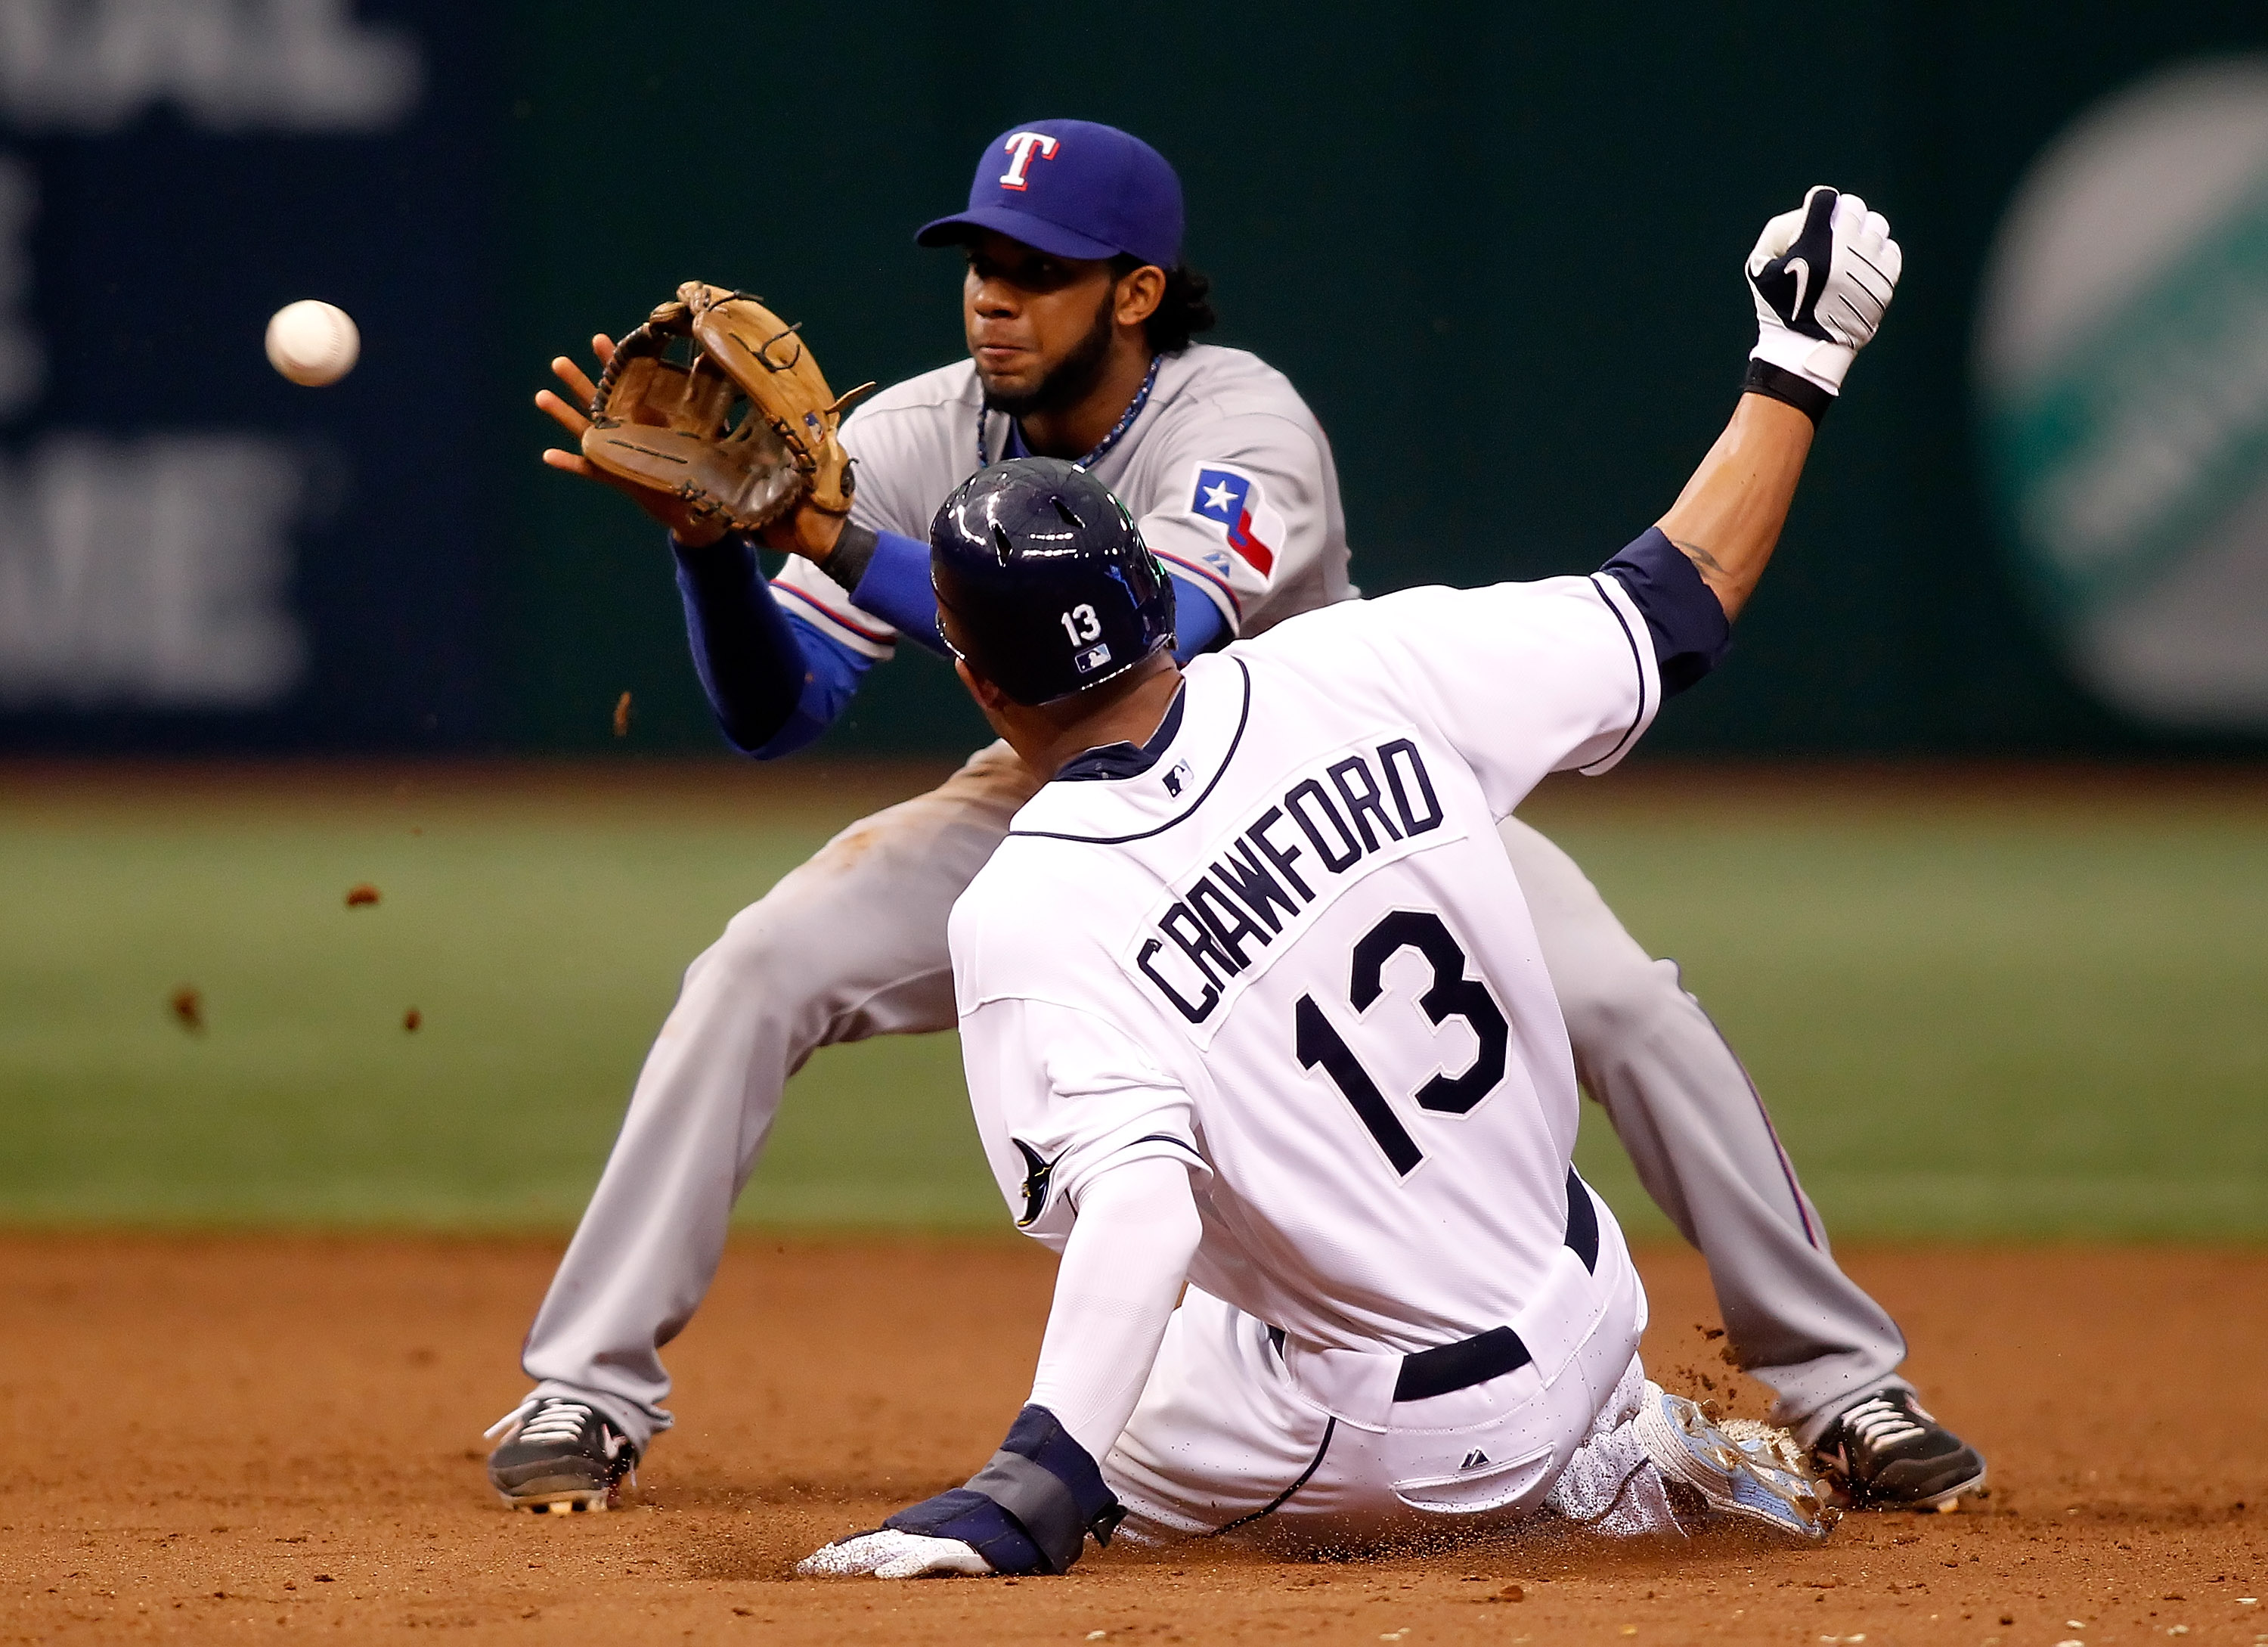 ST. PETERSBURG, FL - OCTOBER 06:  Outfielder Carl Crawford #13 of the Tampa Bay Rays steals second base as shortstop Elvis Andrus #1 of the Texas Rangers takes the throw during Game 1 of the ALDS at Tropicana Field on October 6, 2010 in St. Petersburg, Fl